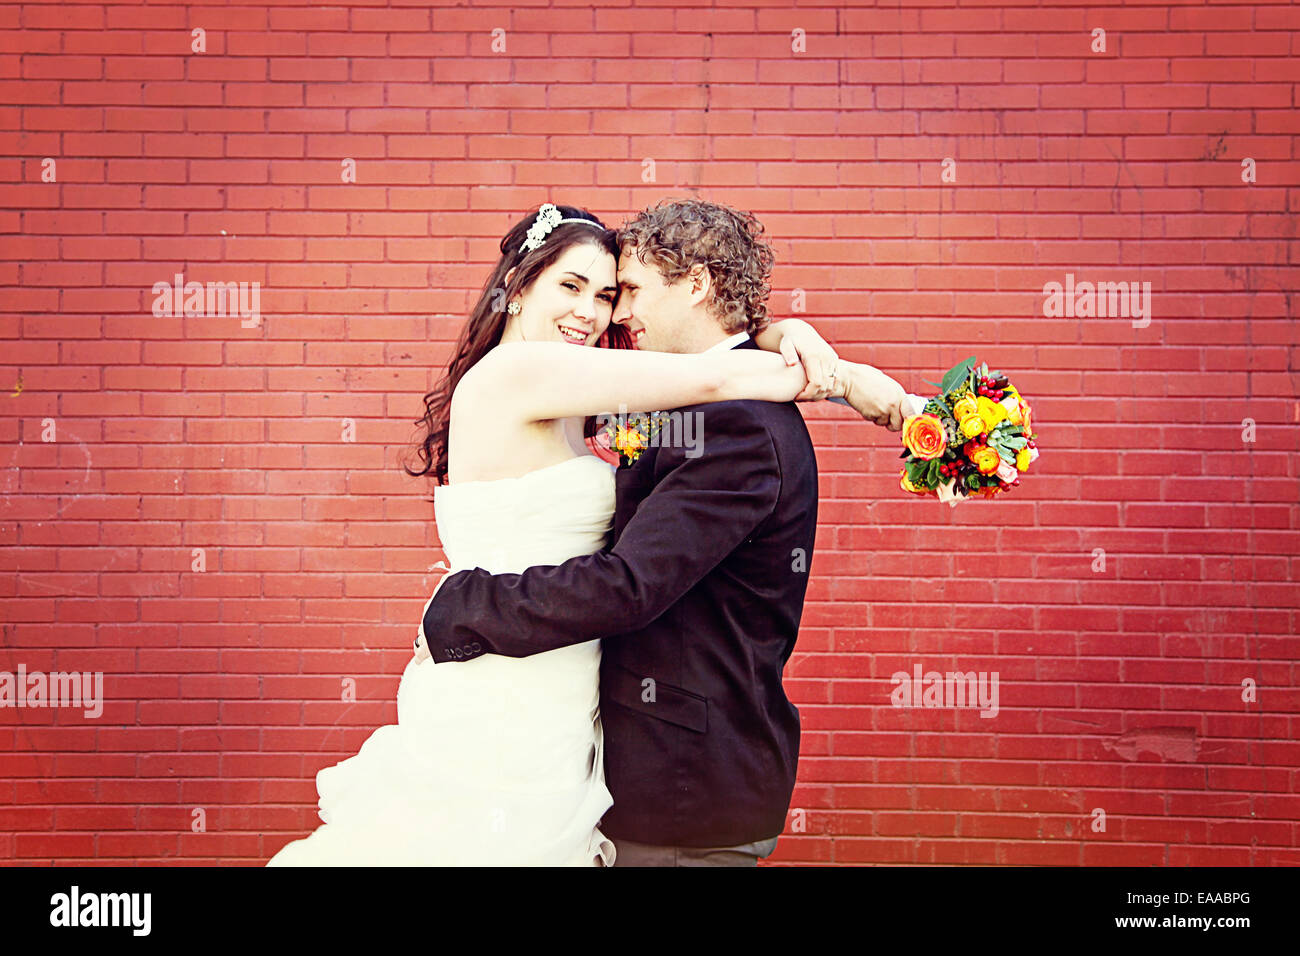 Wedding Couple on there wedding day - Bride and Groom Stock Photo